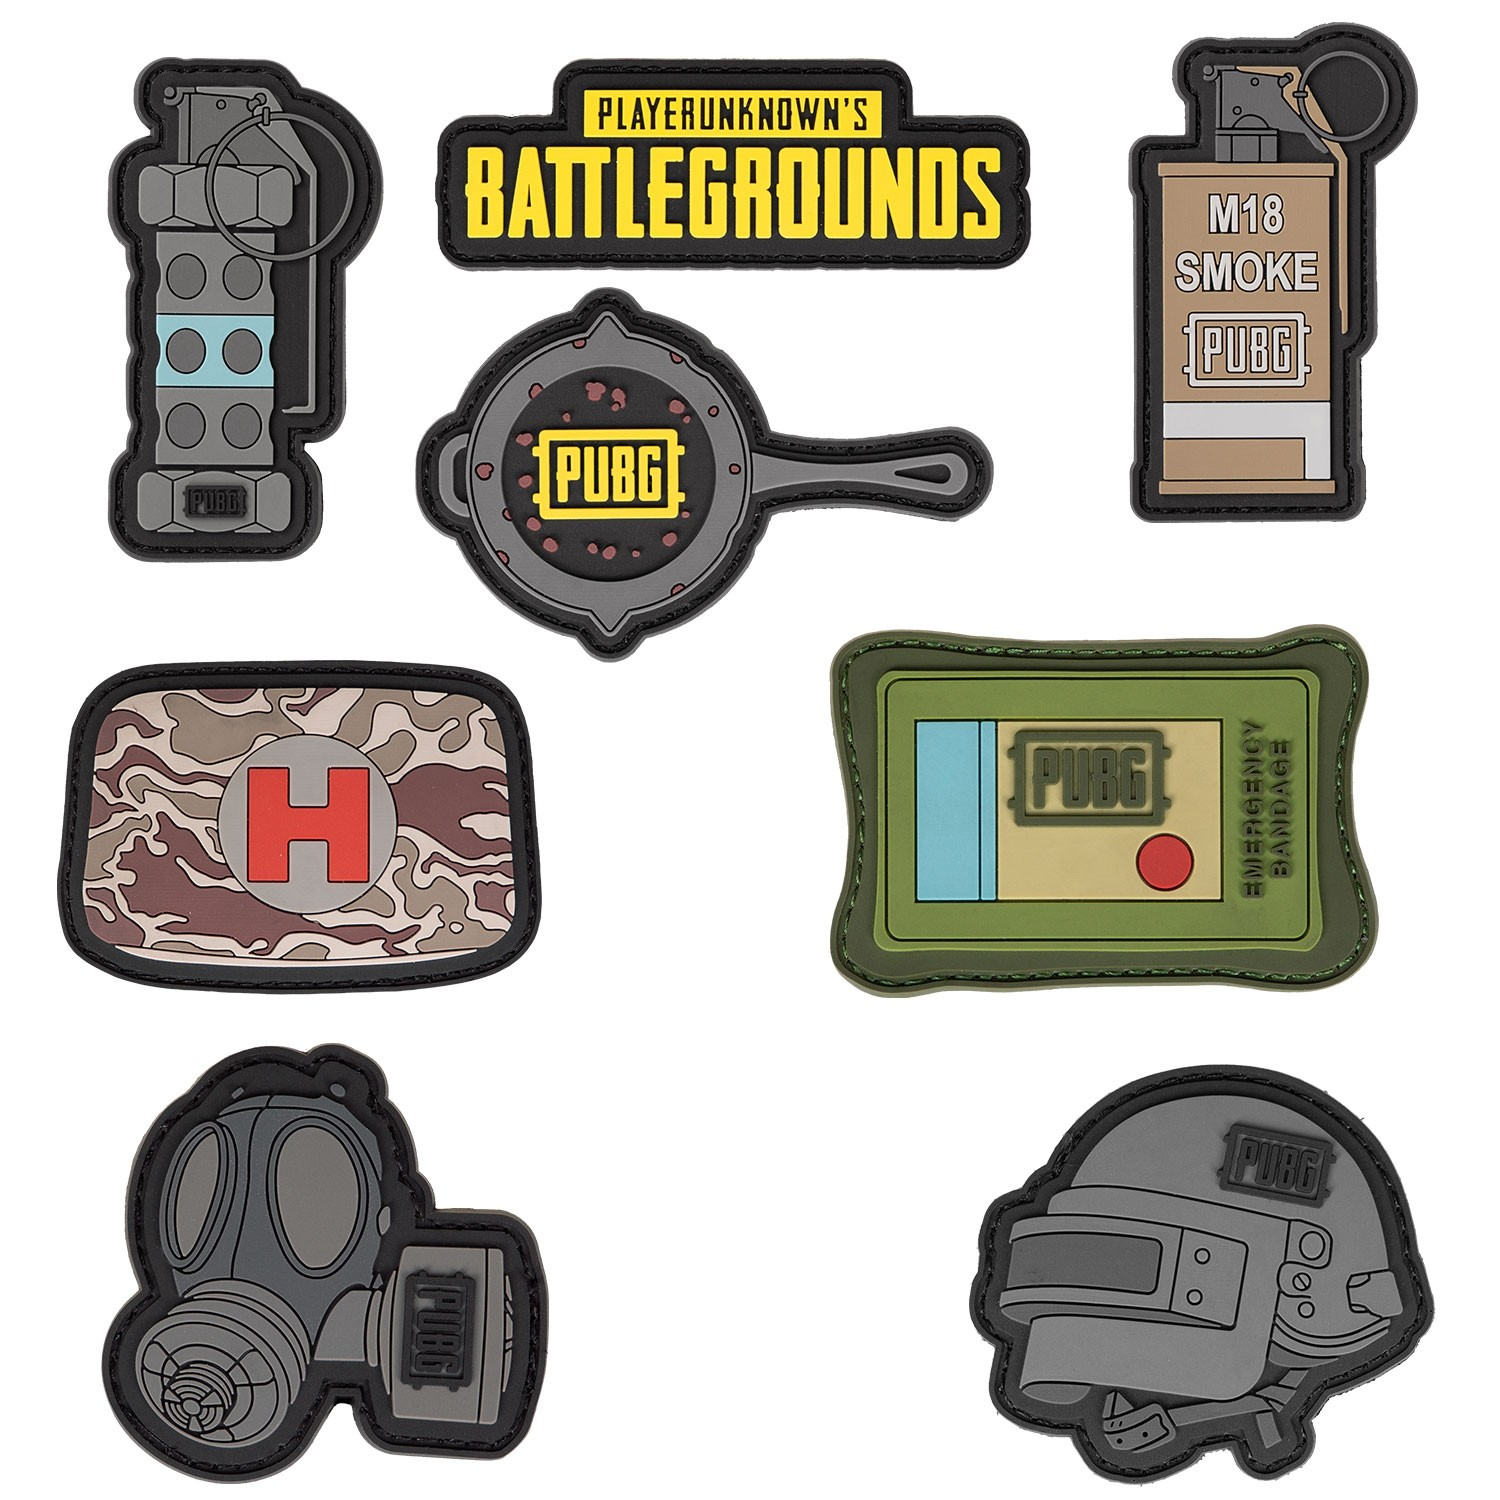 Playerunknown's Battlegrounds (PUBG) Patch Mystery Pack